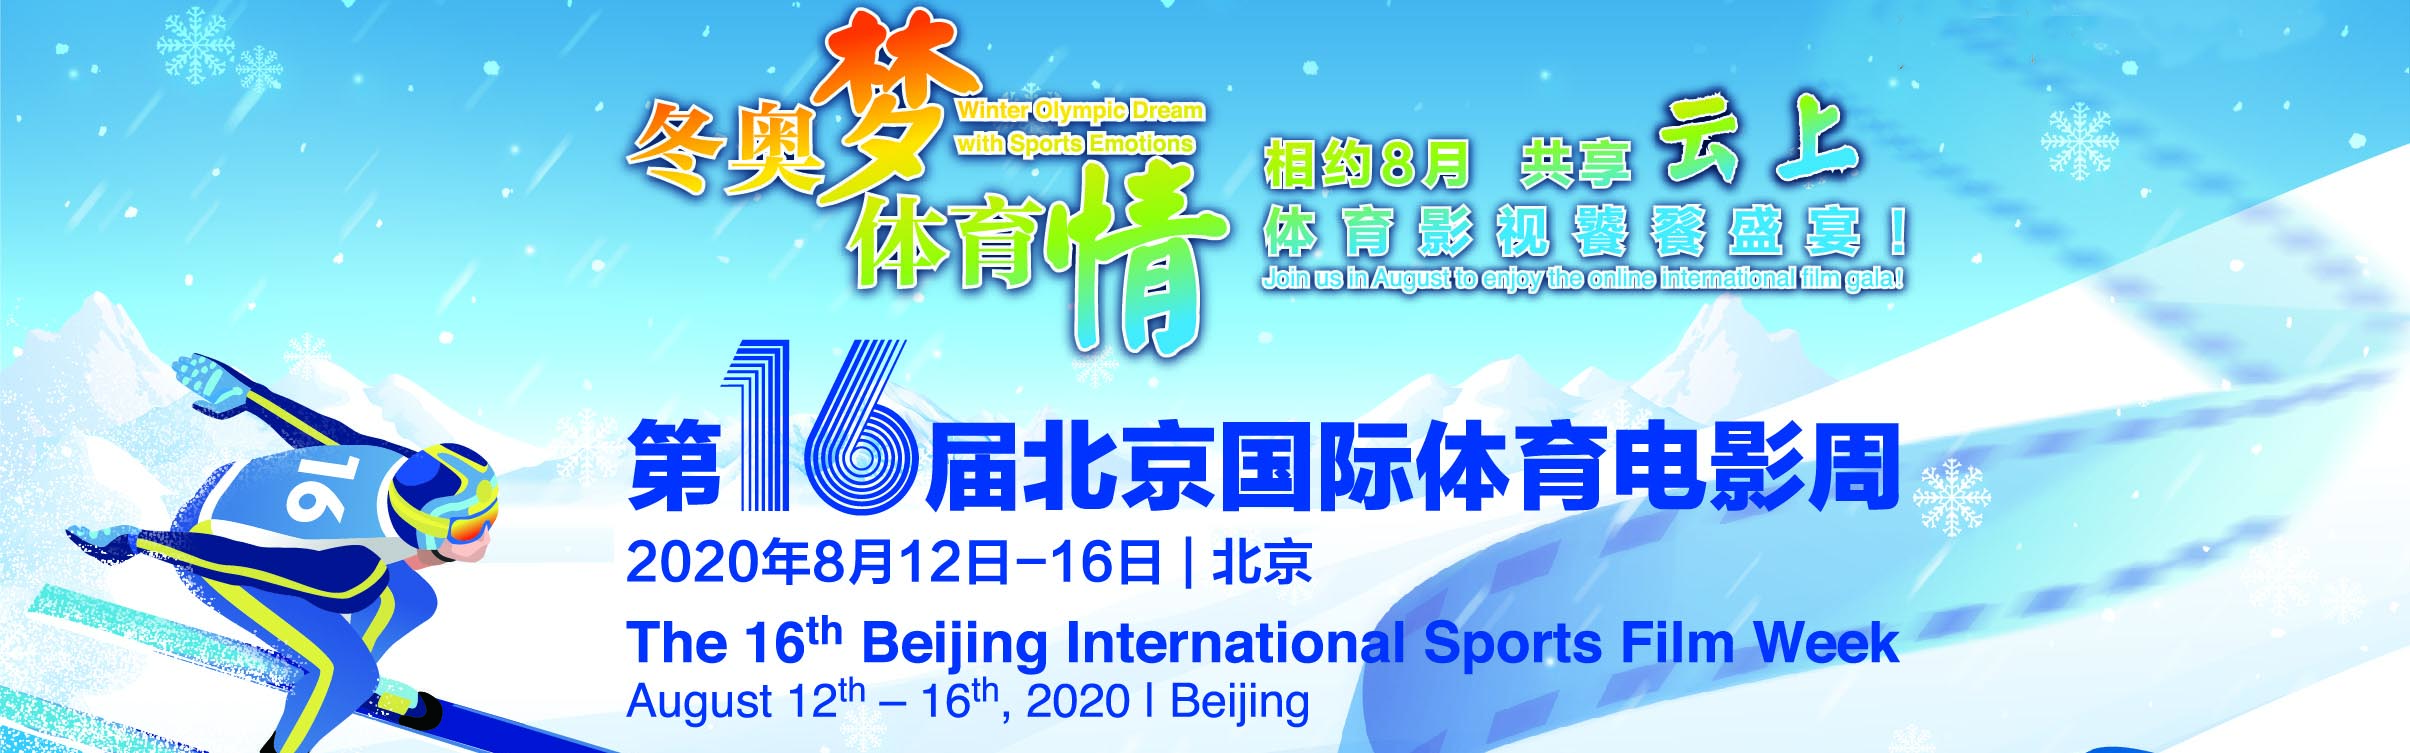 BEIJING INTERNATIONAL FICTS SPORTS FILM WEEK